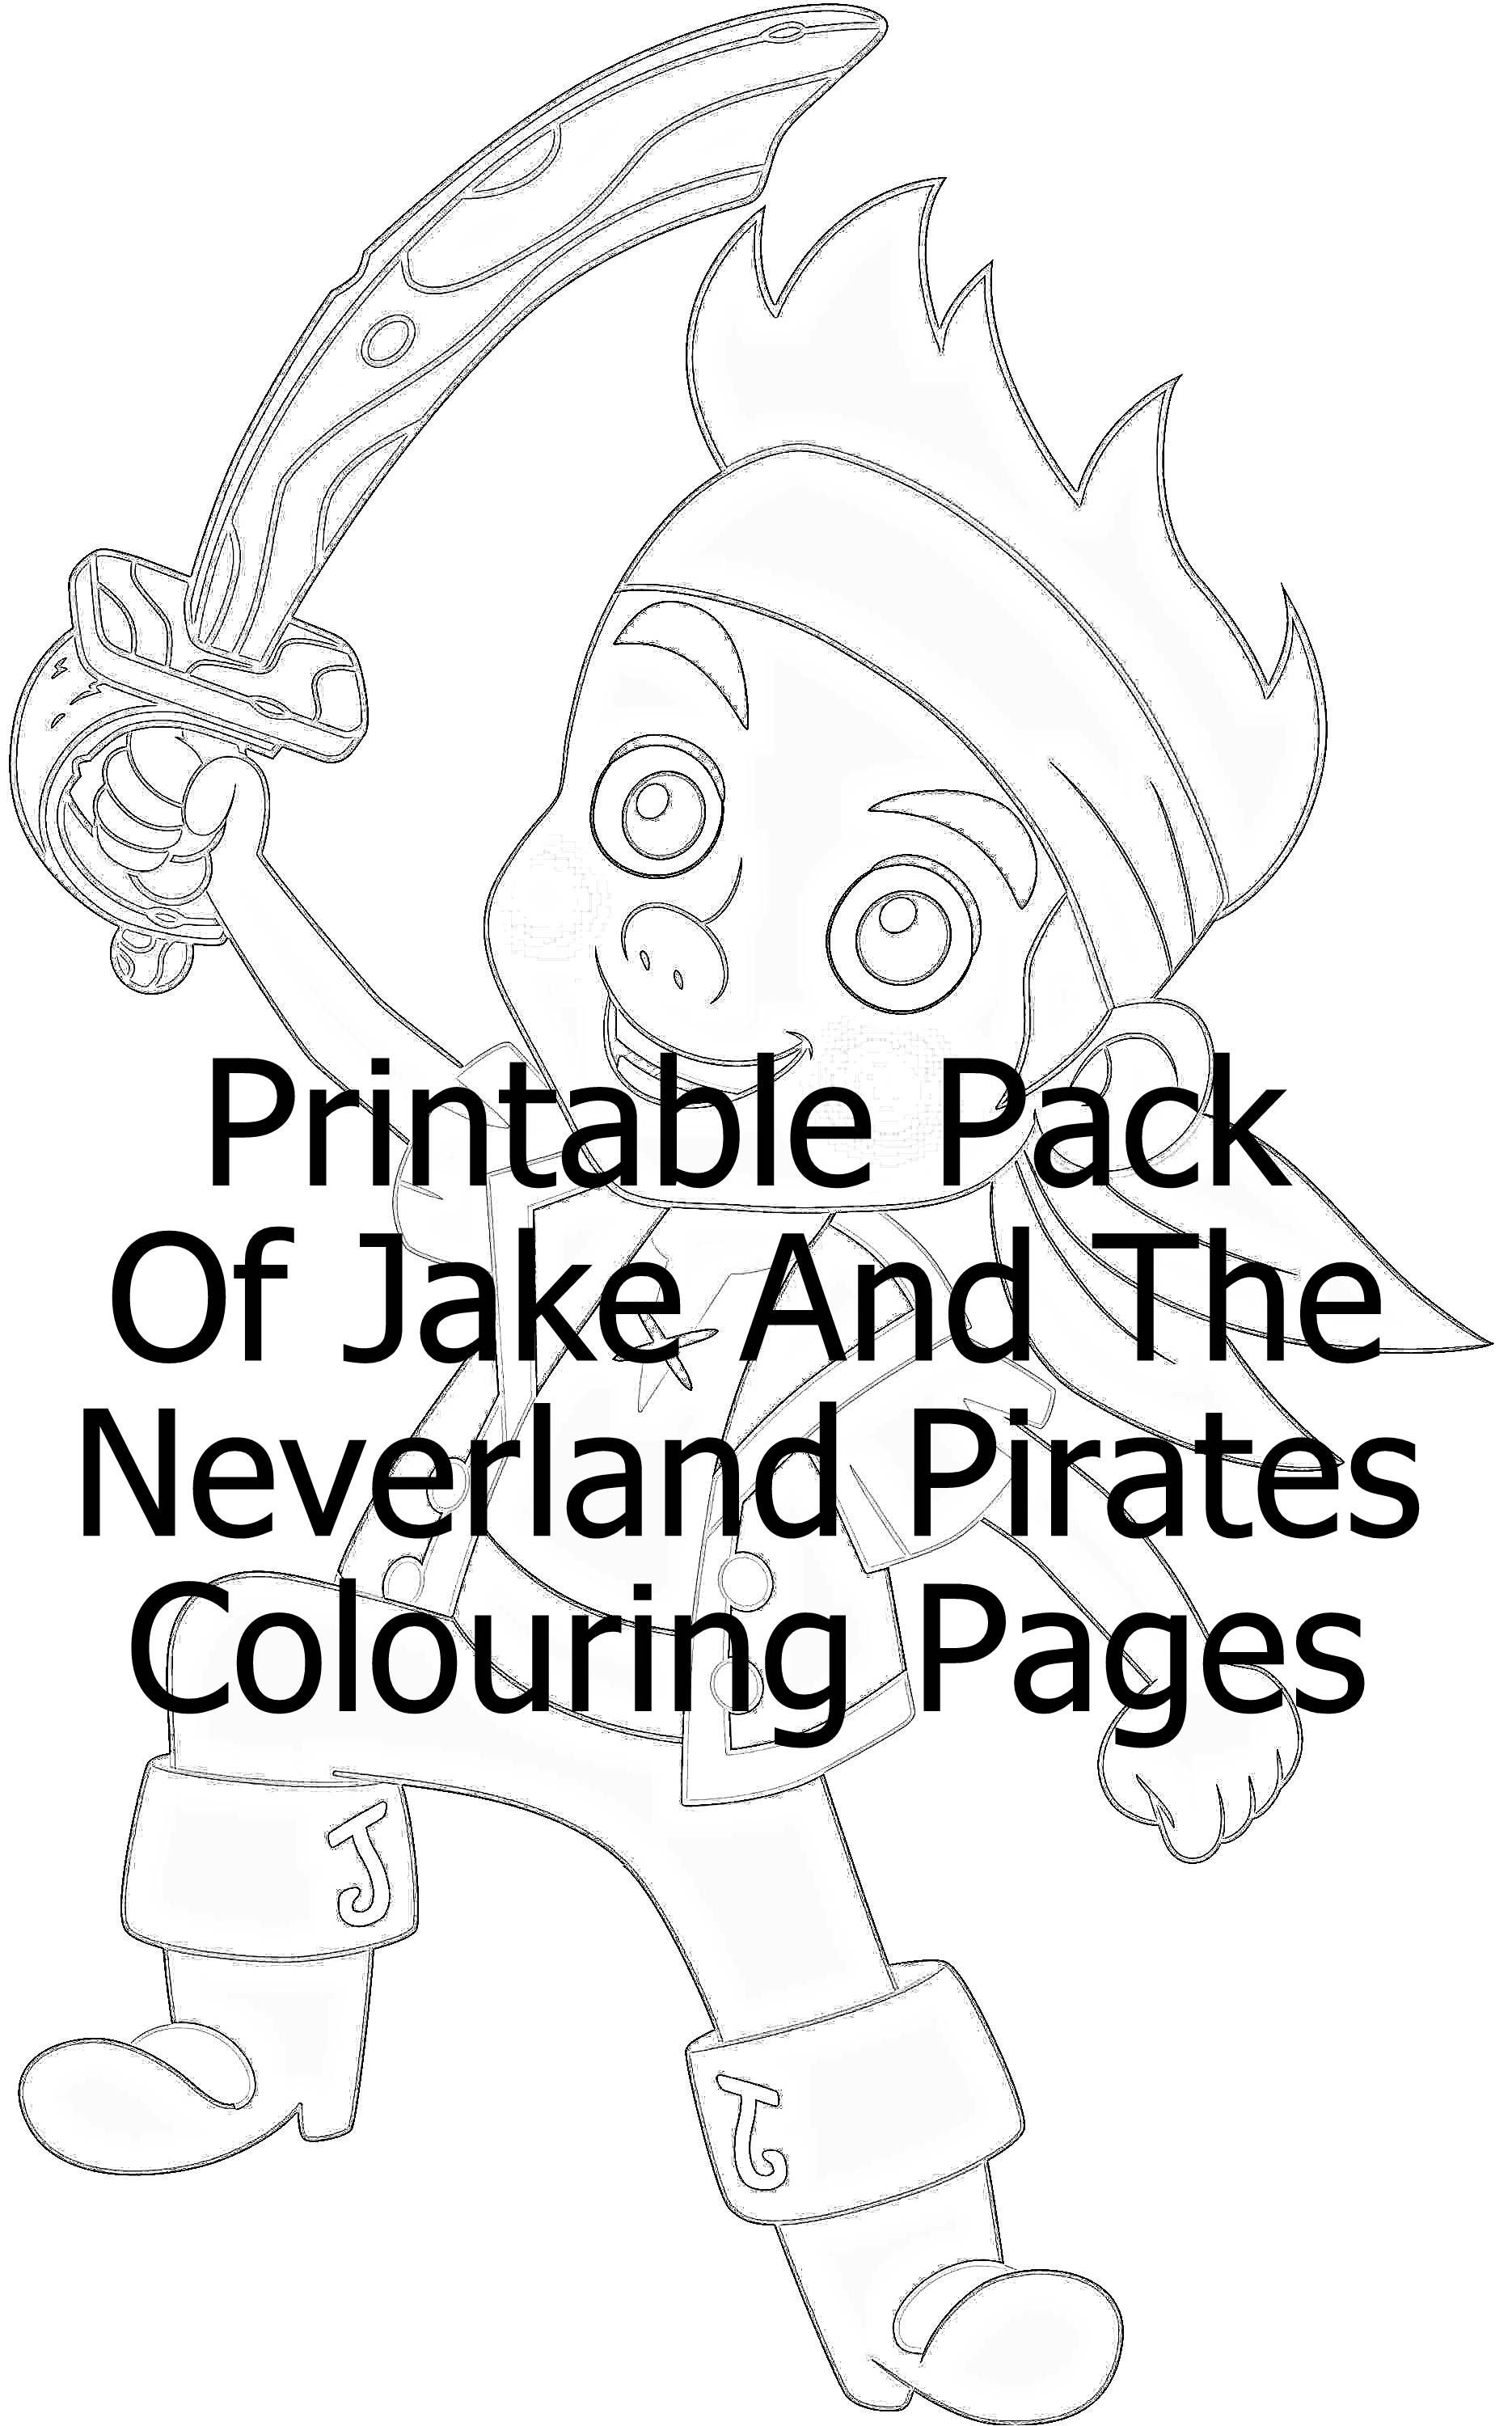 Printable Pack Jake And The Neverland Pirates Colouring